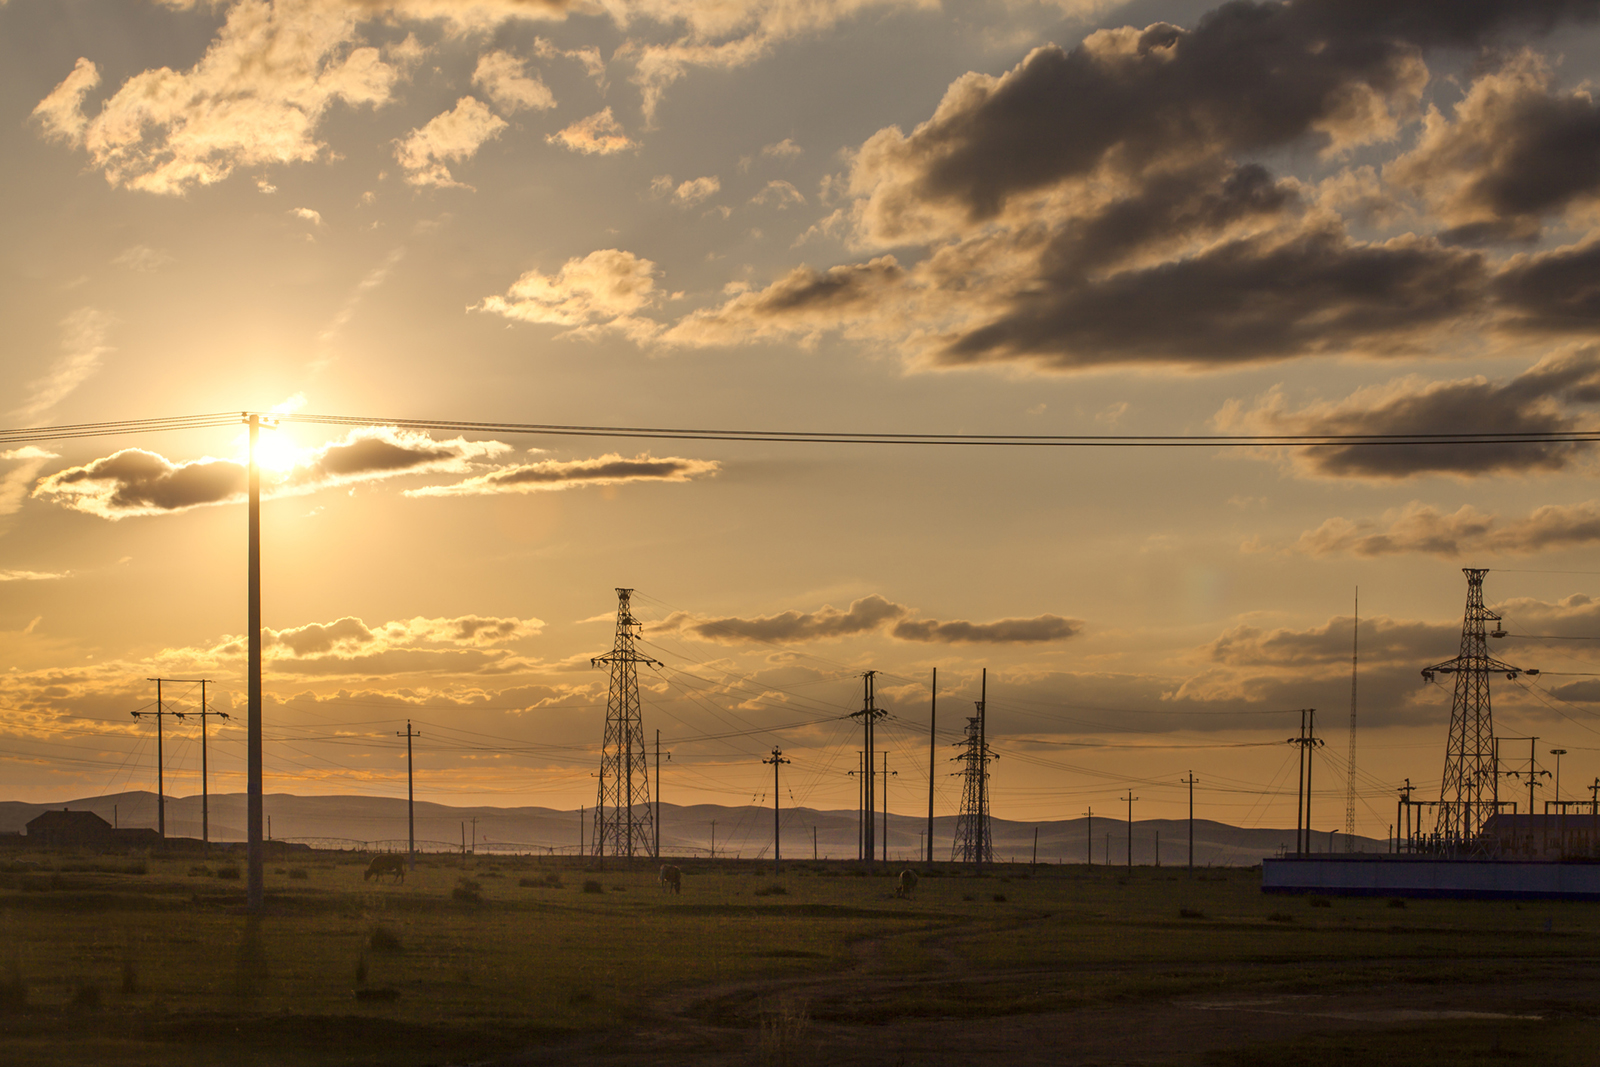 Transmission poles against sunset background